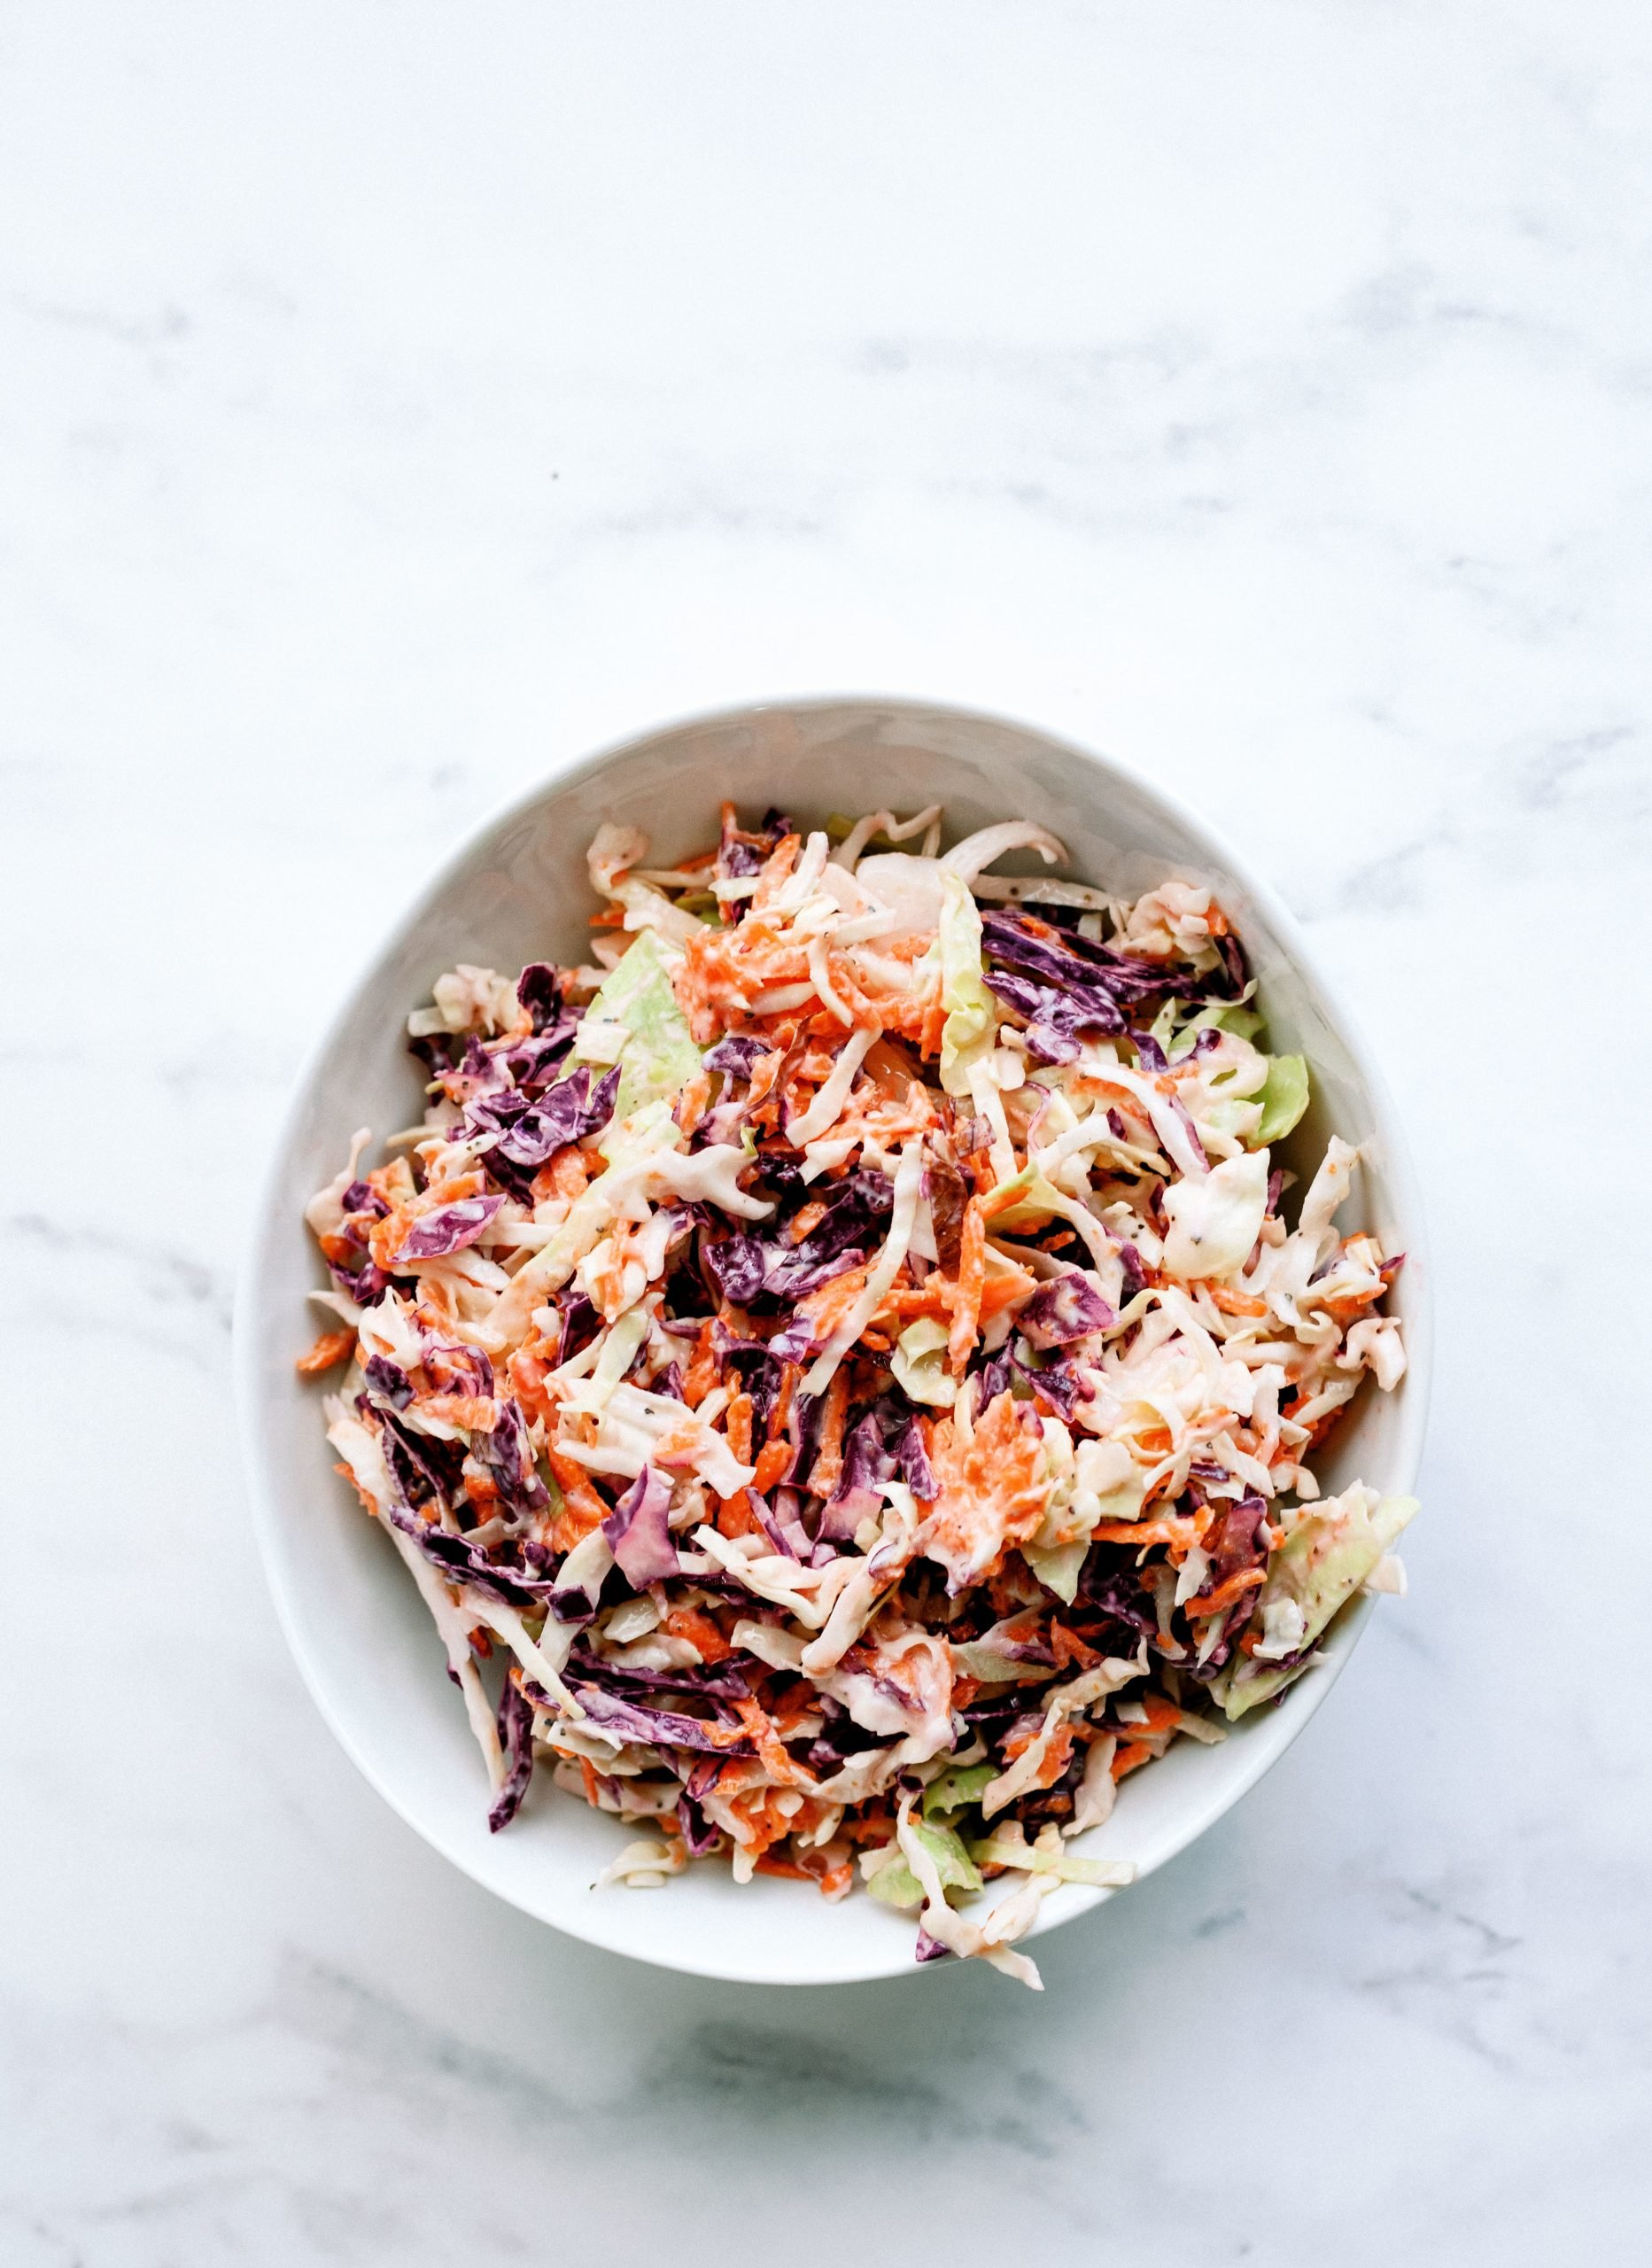 purple cabbage, shredded carrots, and green cabbage coleslaw in a bowl